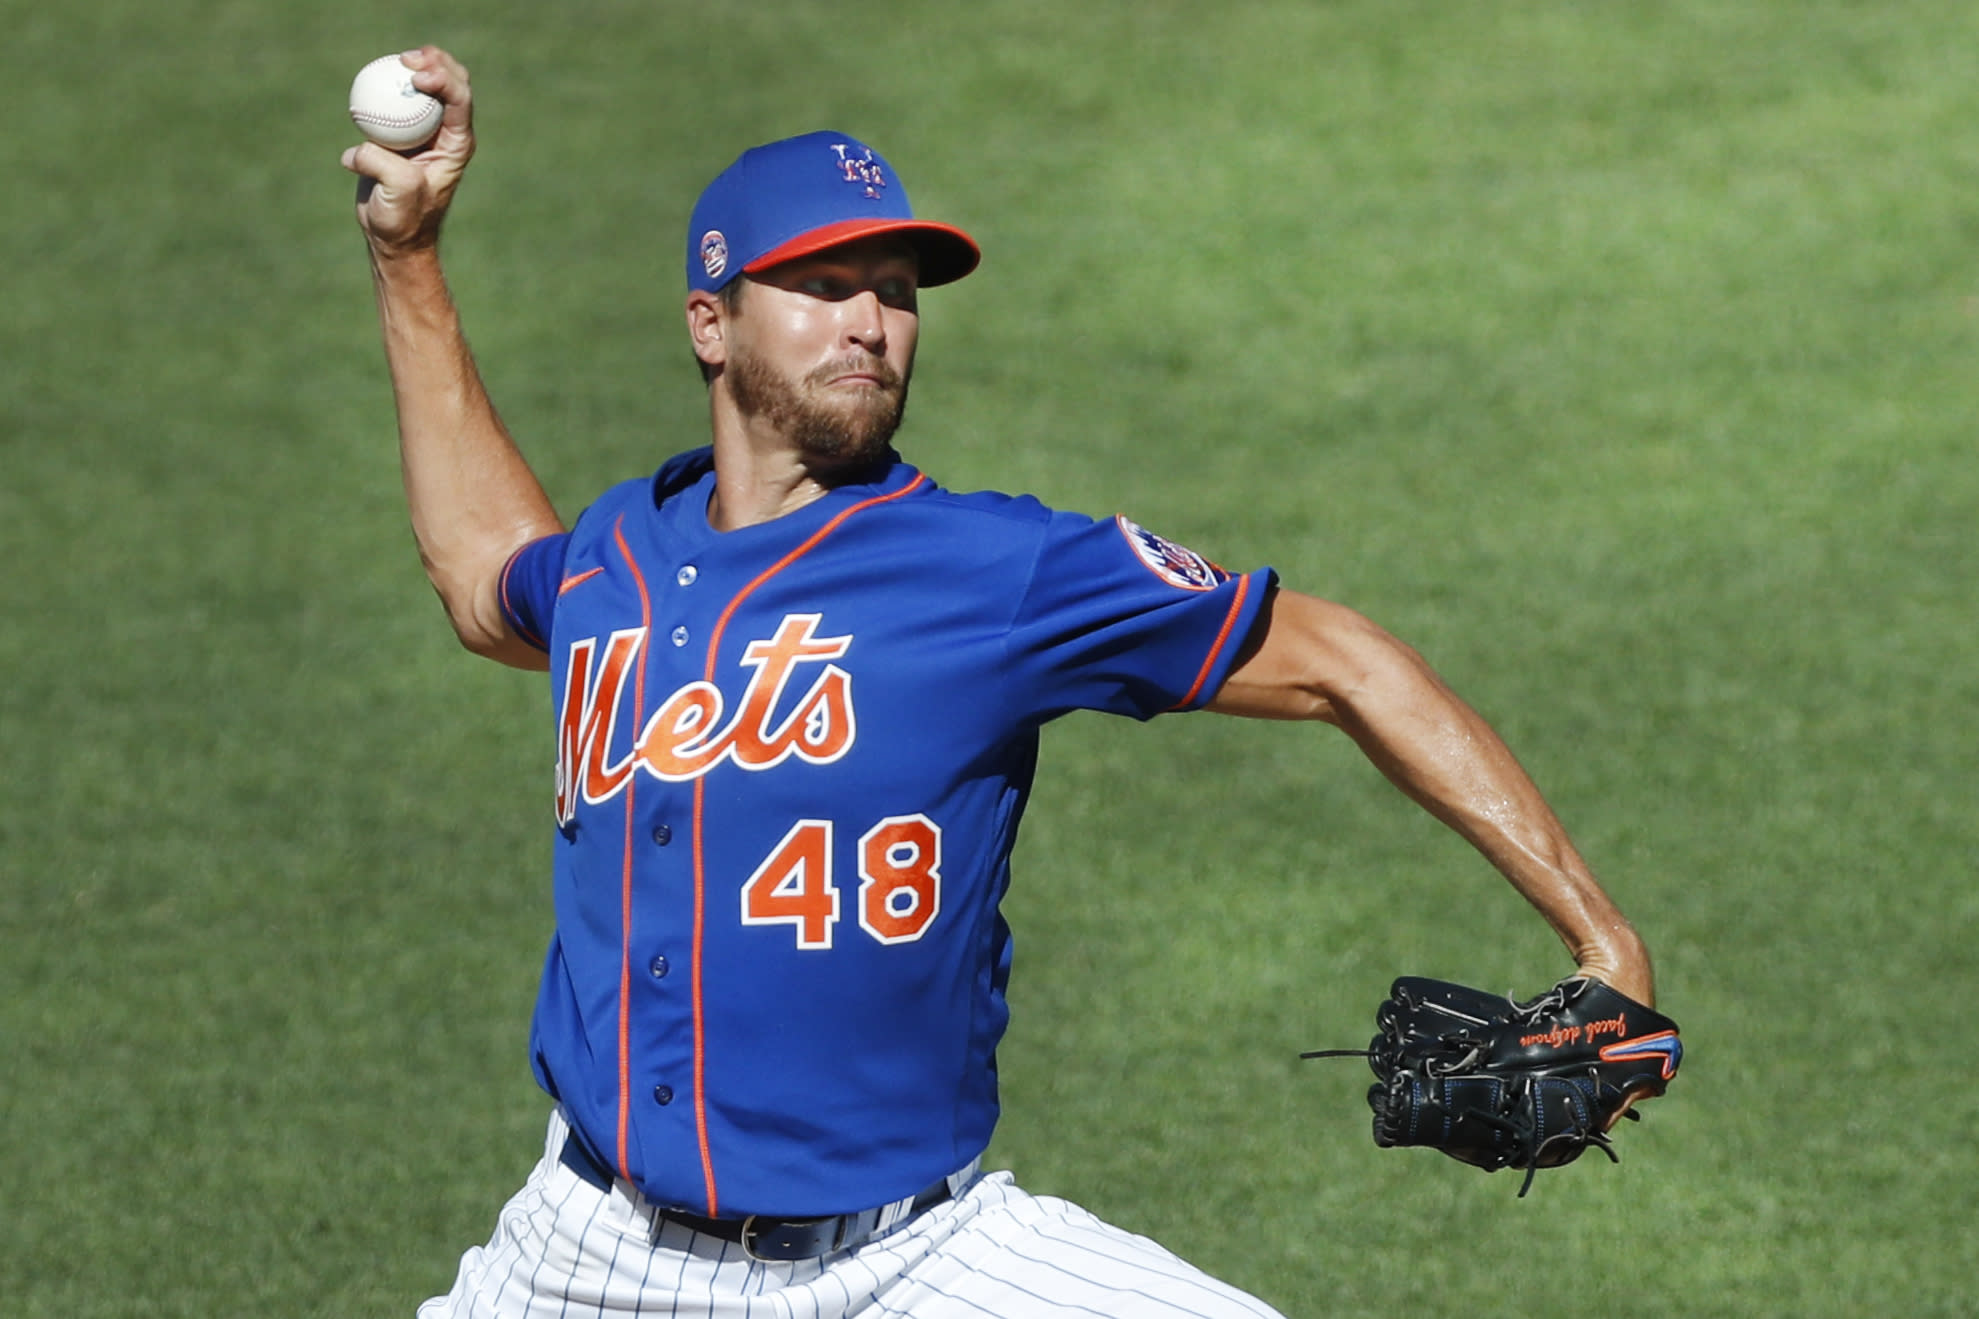 New York Mets starting pitcher Jacob deGrom (48) winds up while delivering a pitch during a simulated game, part of the Mets summer training camp workout at Citi Field, Thursday, July 9, 2020, in New York. (AP Photo/Kathy Willens)